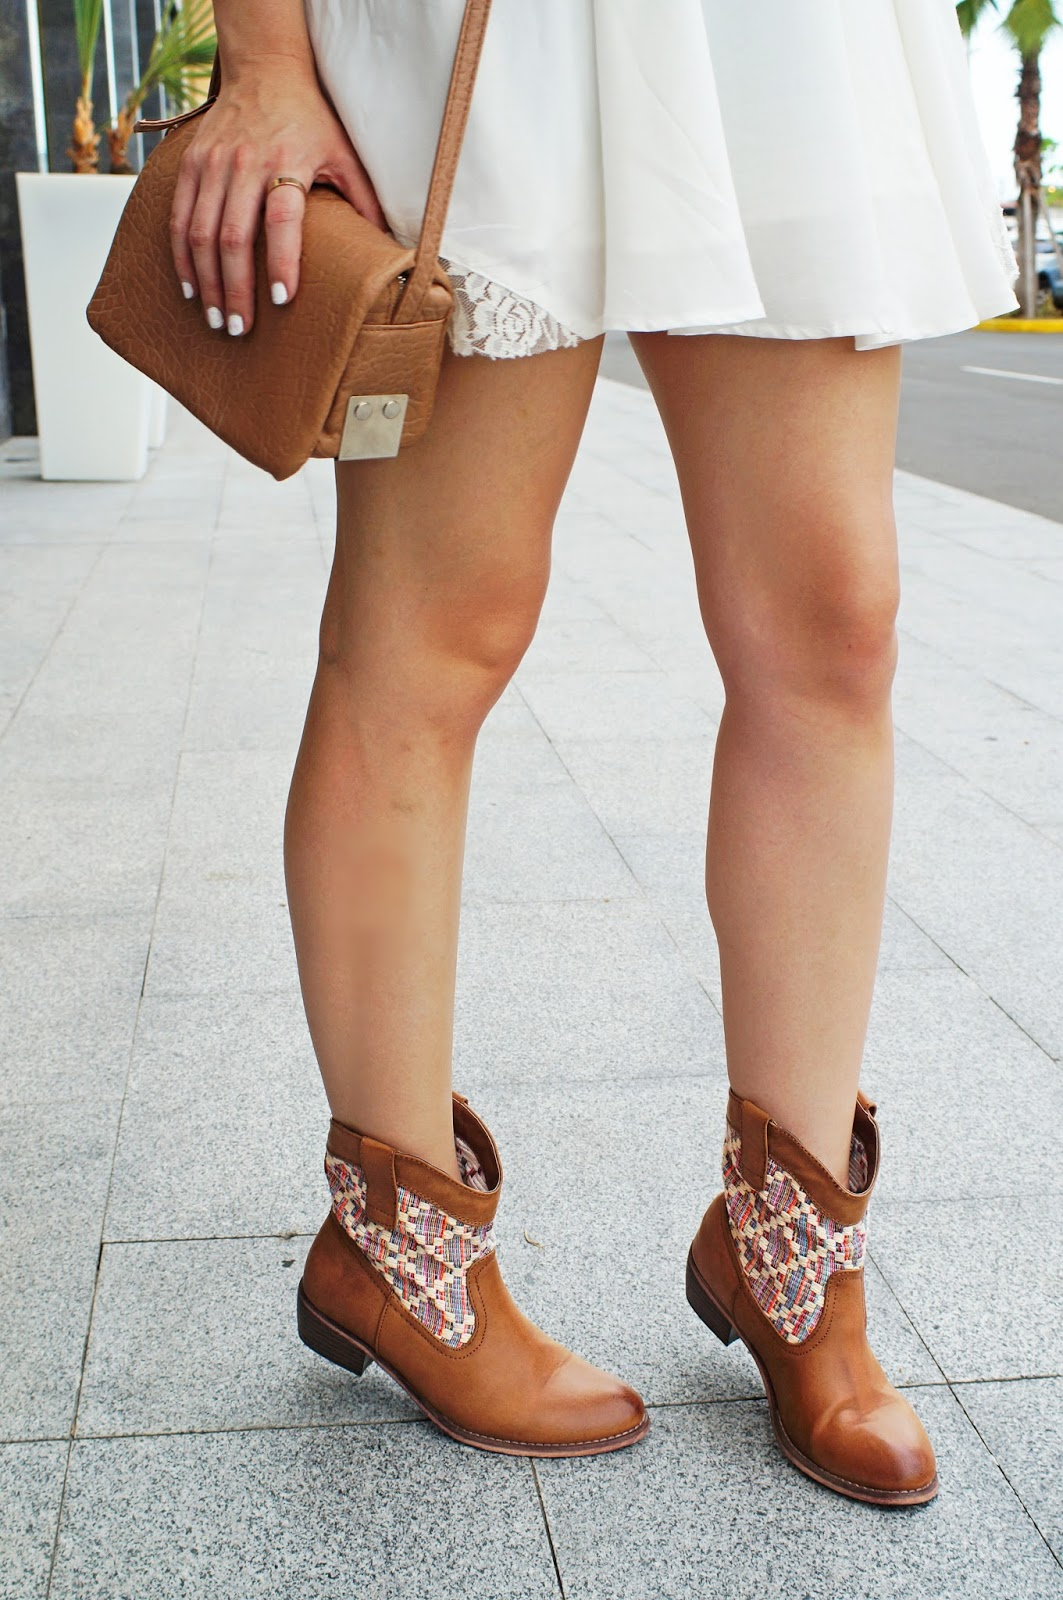 Casual Outfit wearing Booties